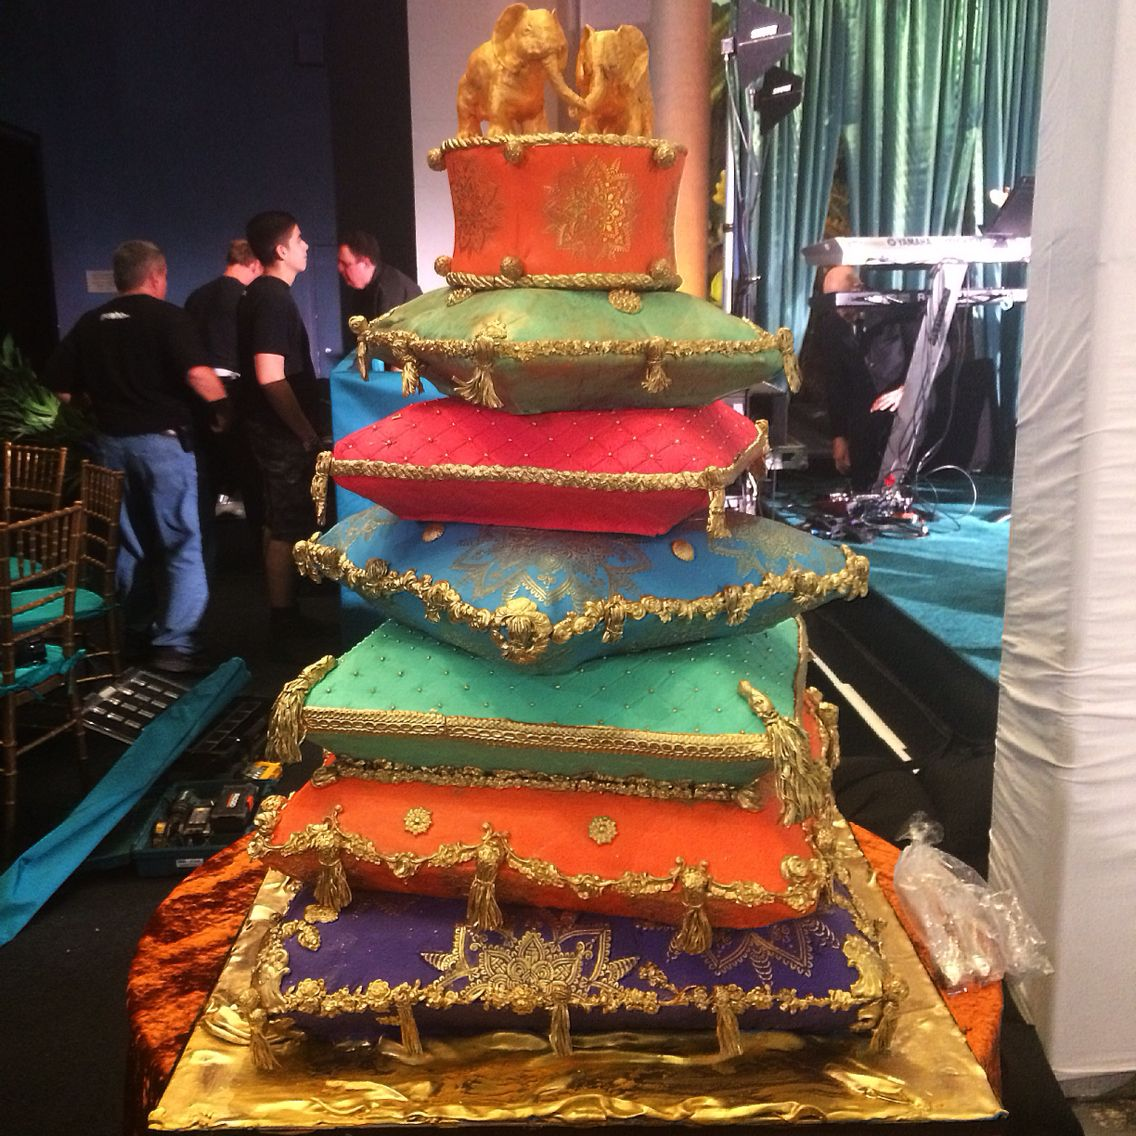 Stacked pillow jewel tone wedding cake Indian theme with gold elephants on top. Pillows have decor with NY buildings in it